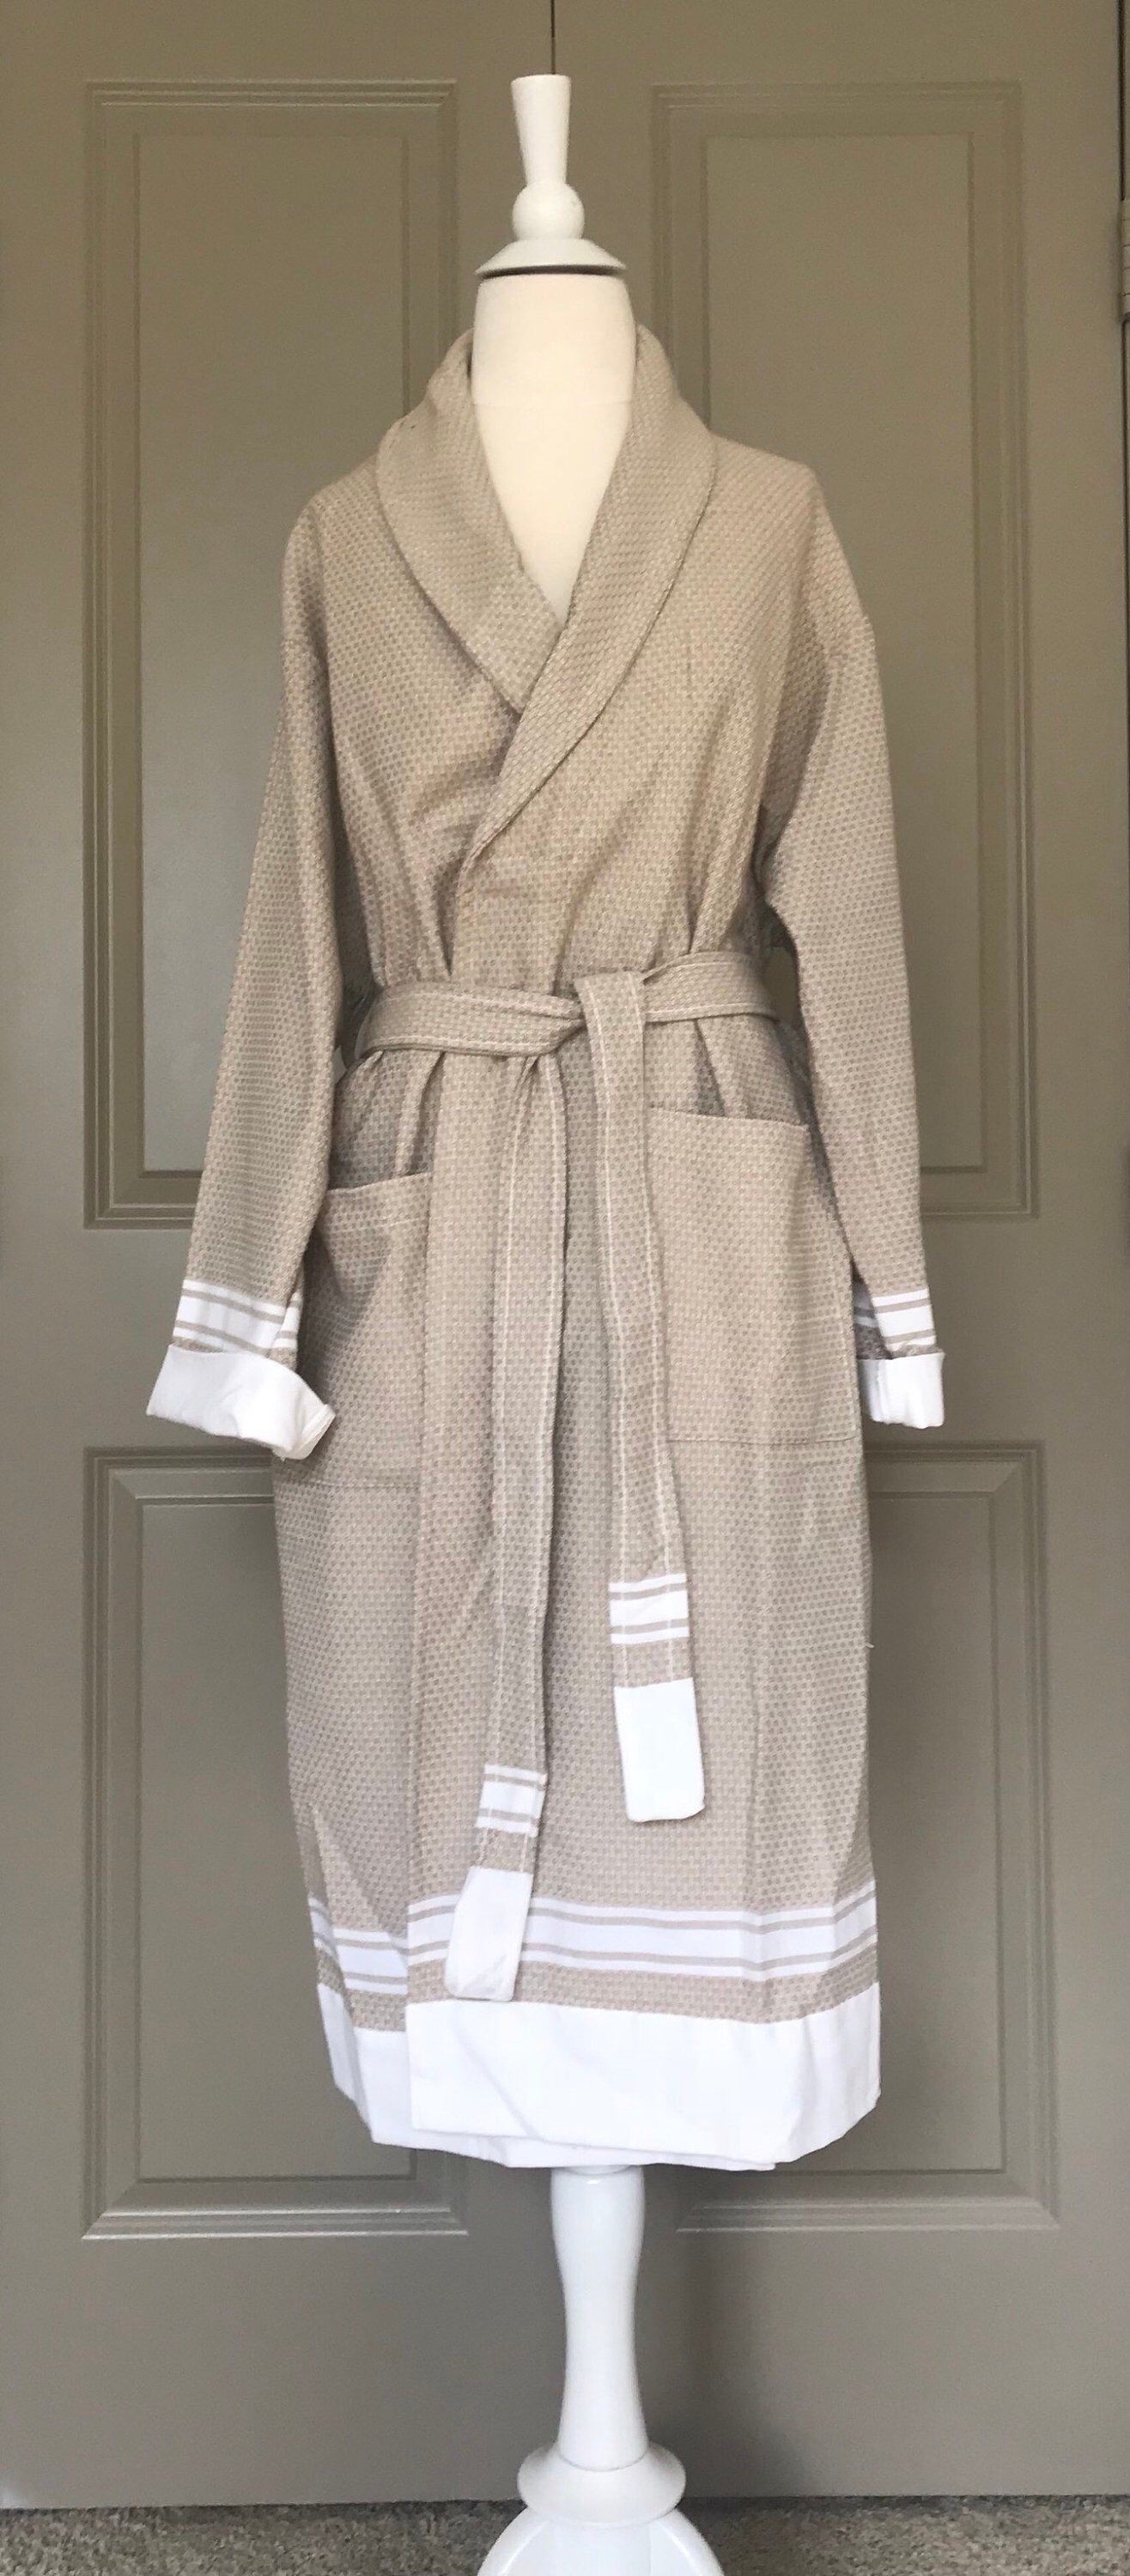 Excited to share this item from my  etsy shop  Premium Quality Peshtemal  Bathrobe aab2e55d3